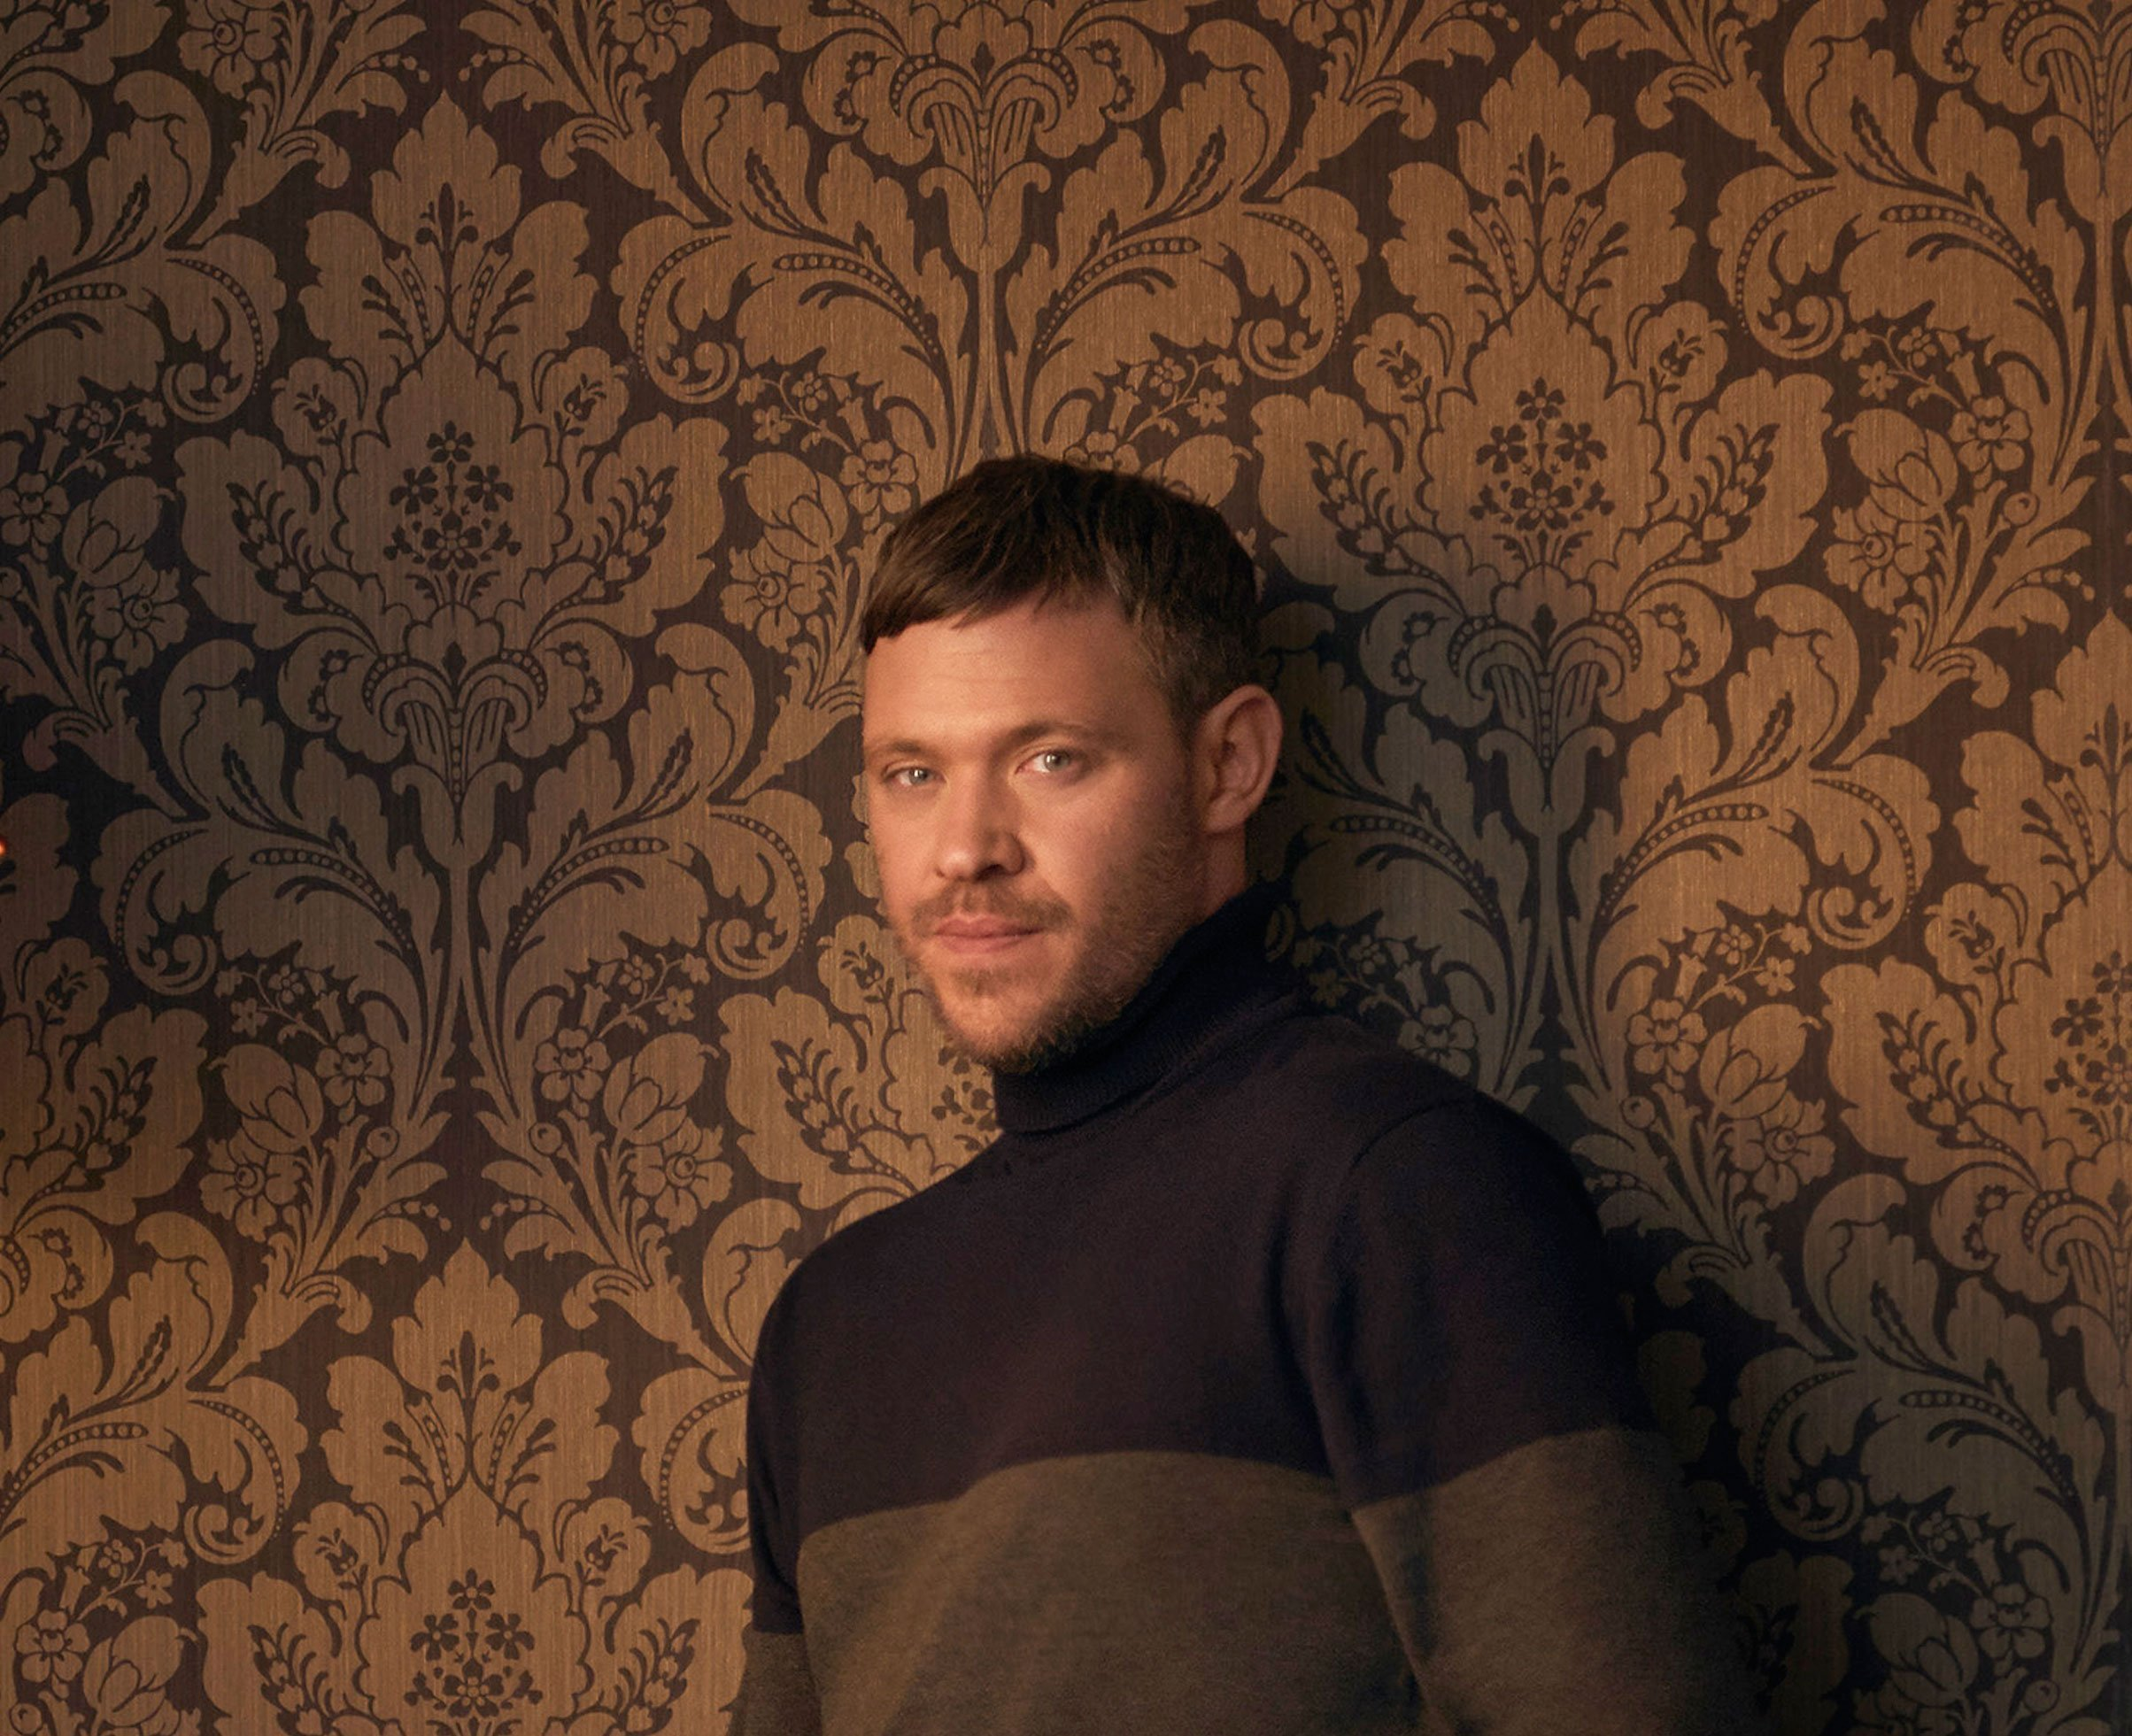 WILL YOUNG releases new single 'Ground Running' ahead of UK tour - Listen Now